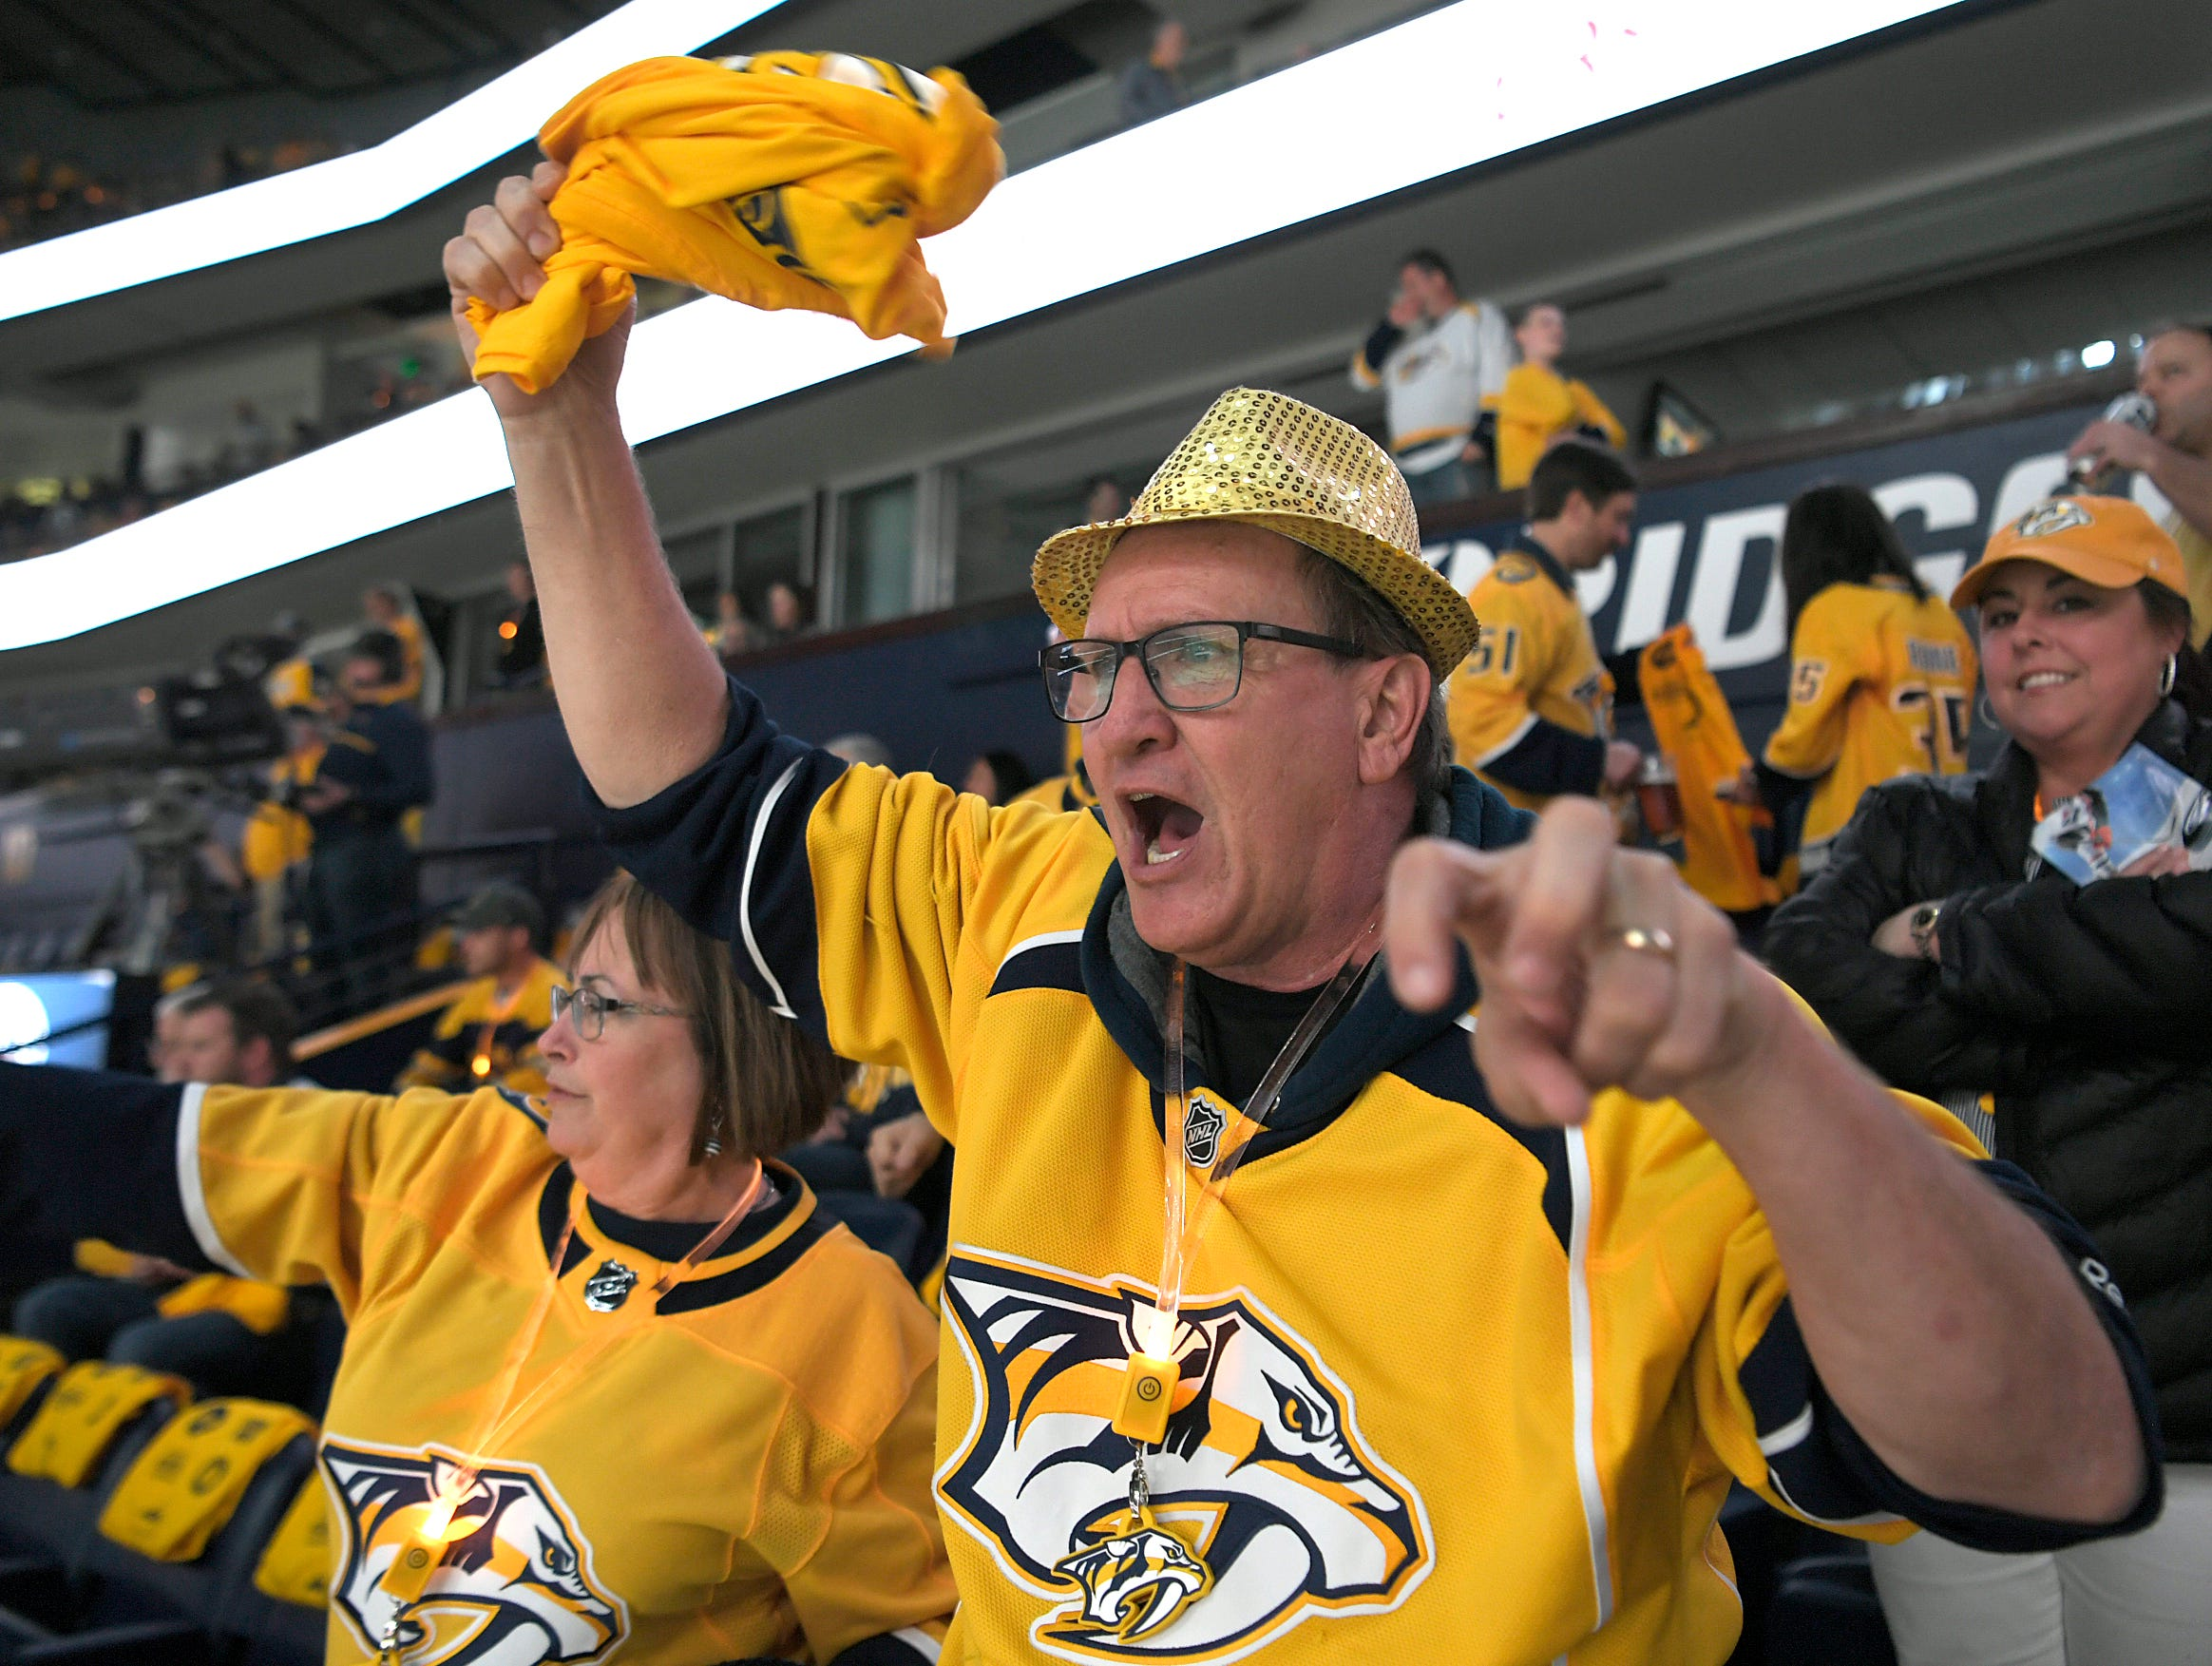 Debi and Jim Murphy of Belvidere, Tenn. cheer as the Predators take the ice during divisional semifinal Stanley Cup playoff game at Bridgestone Arena in Nashville, Wednesday, April 10, 2019.